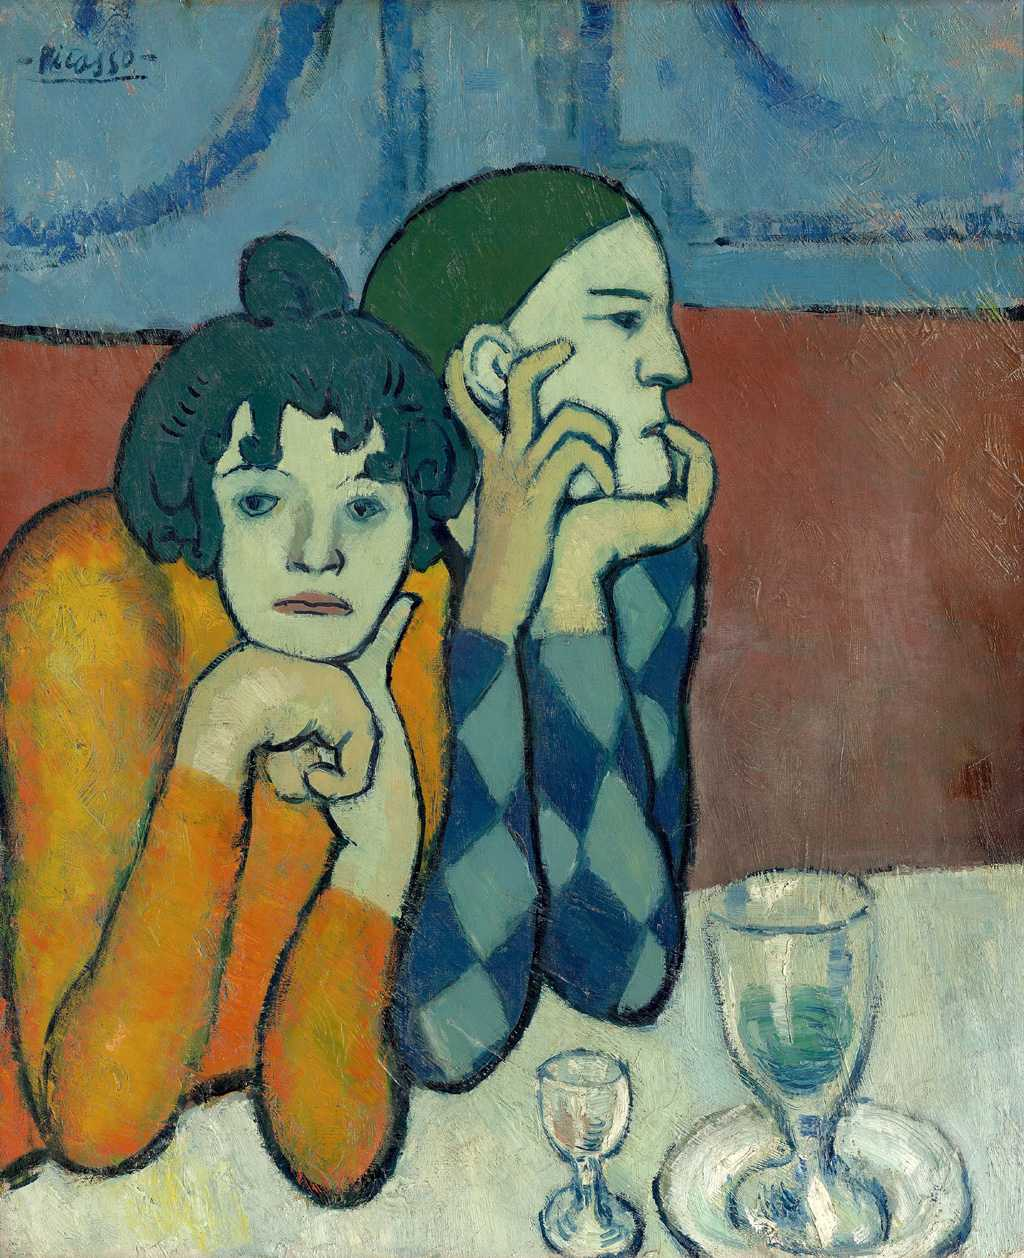 The Two Saltimbanques (Harlequin and his Companion) by Pablo Picasso